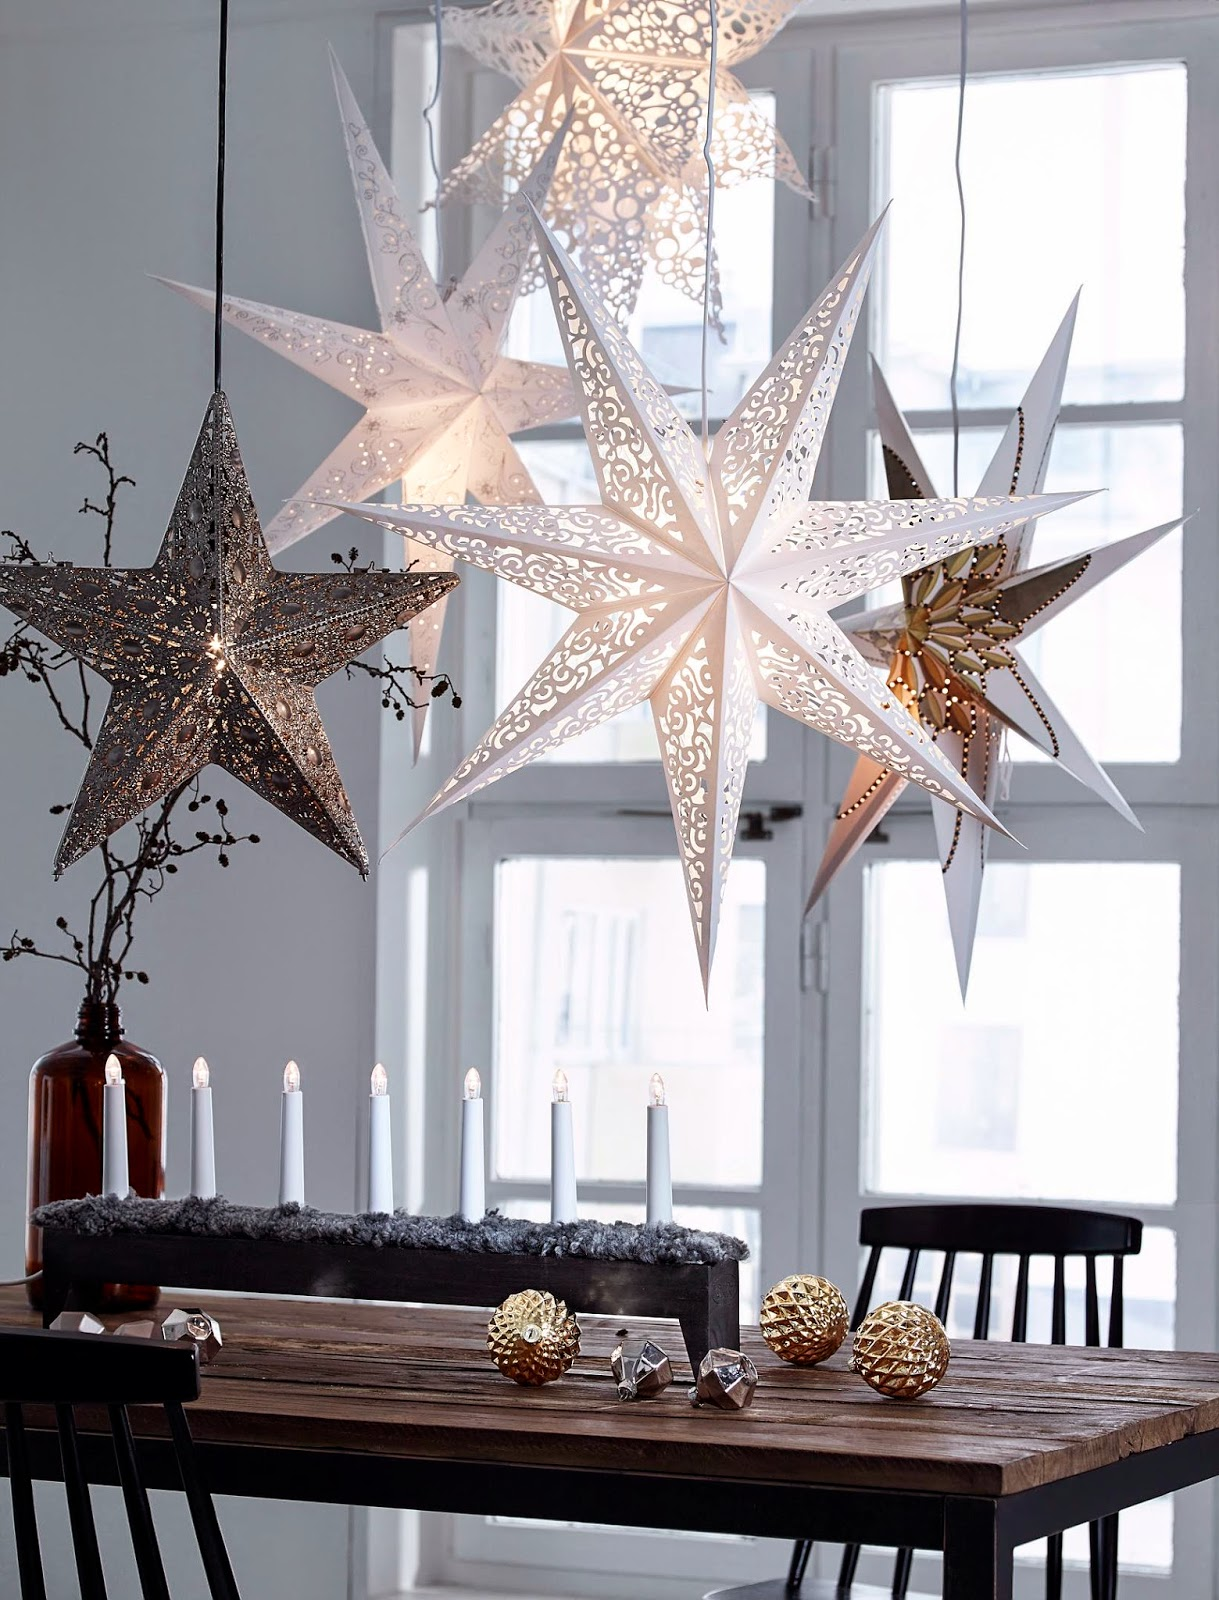 Scandi style Christmas dining table with metal star decorations